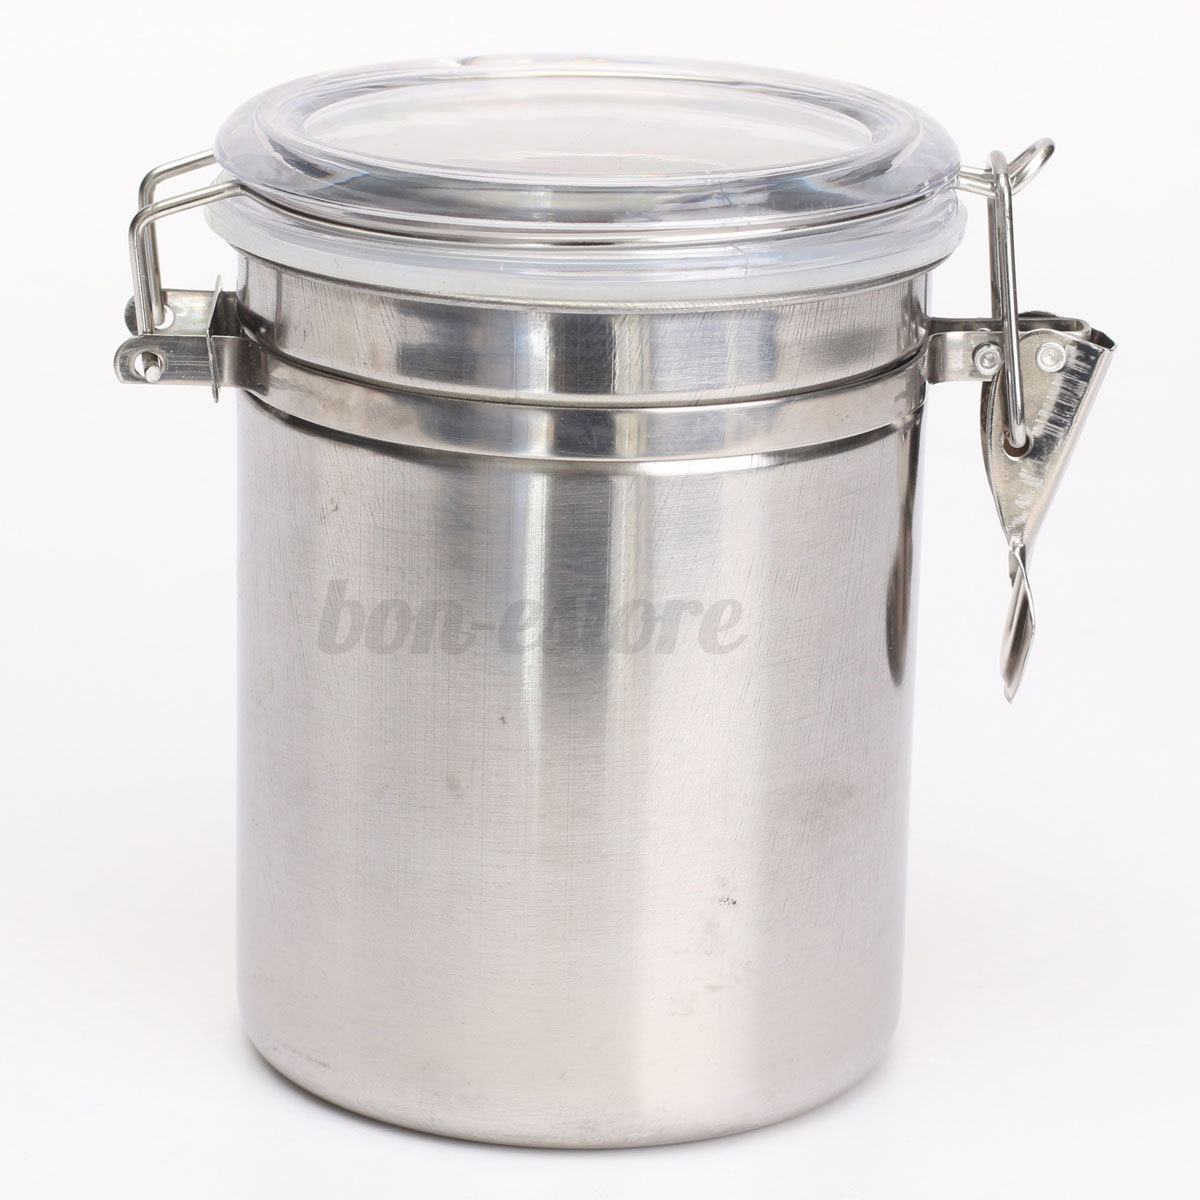 stainless steel airtight sealed canister coffee flour sugar tea container holder ebay. Black Bedroom Furniture Sets. Home Design Ideas